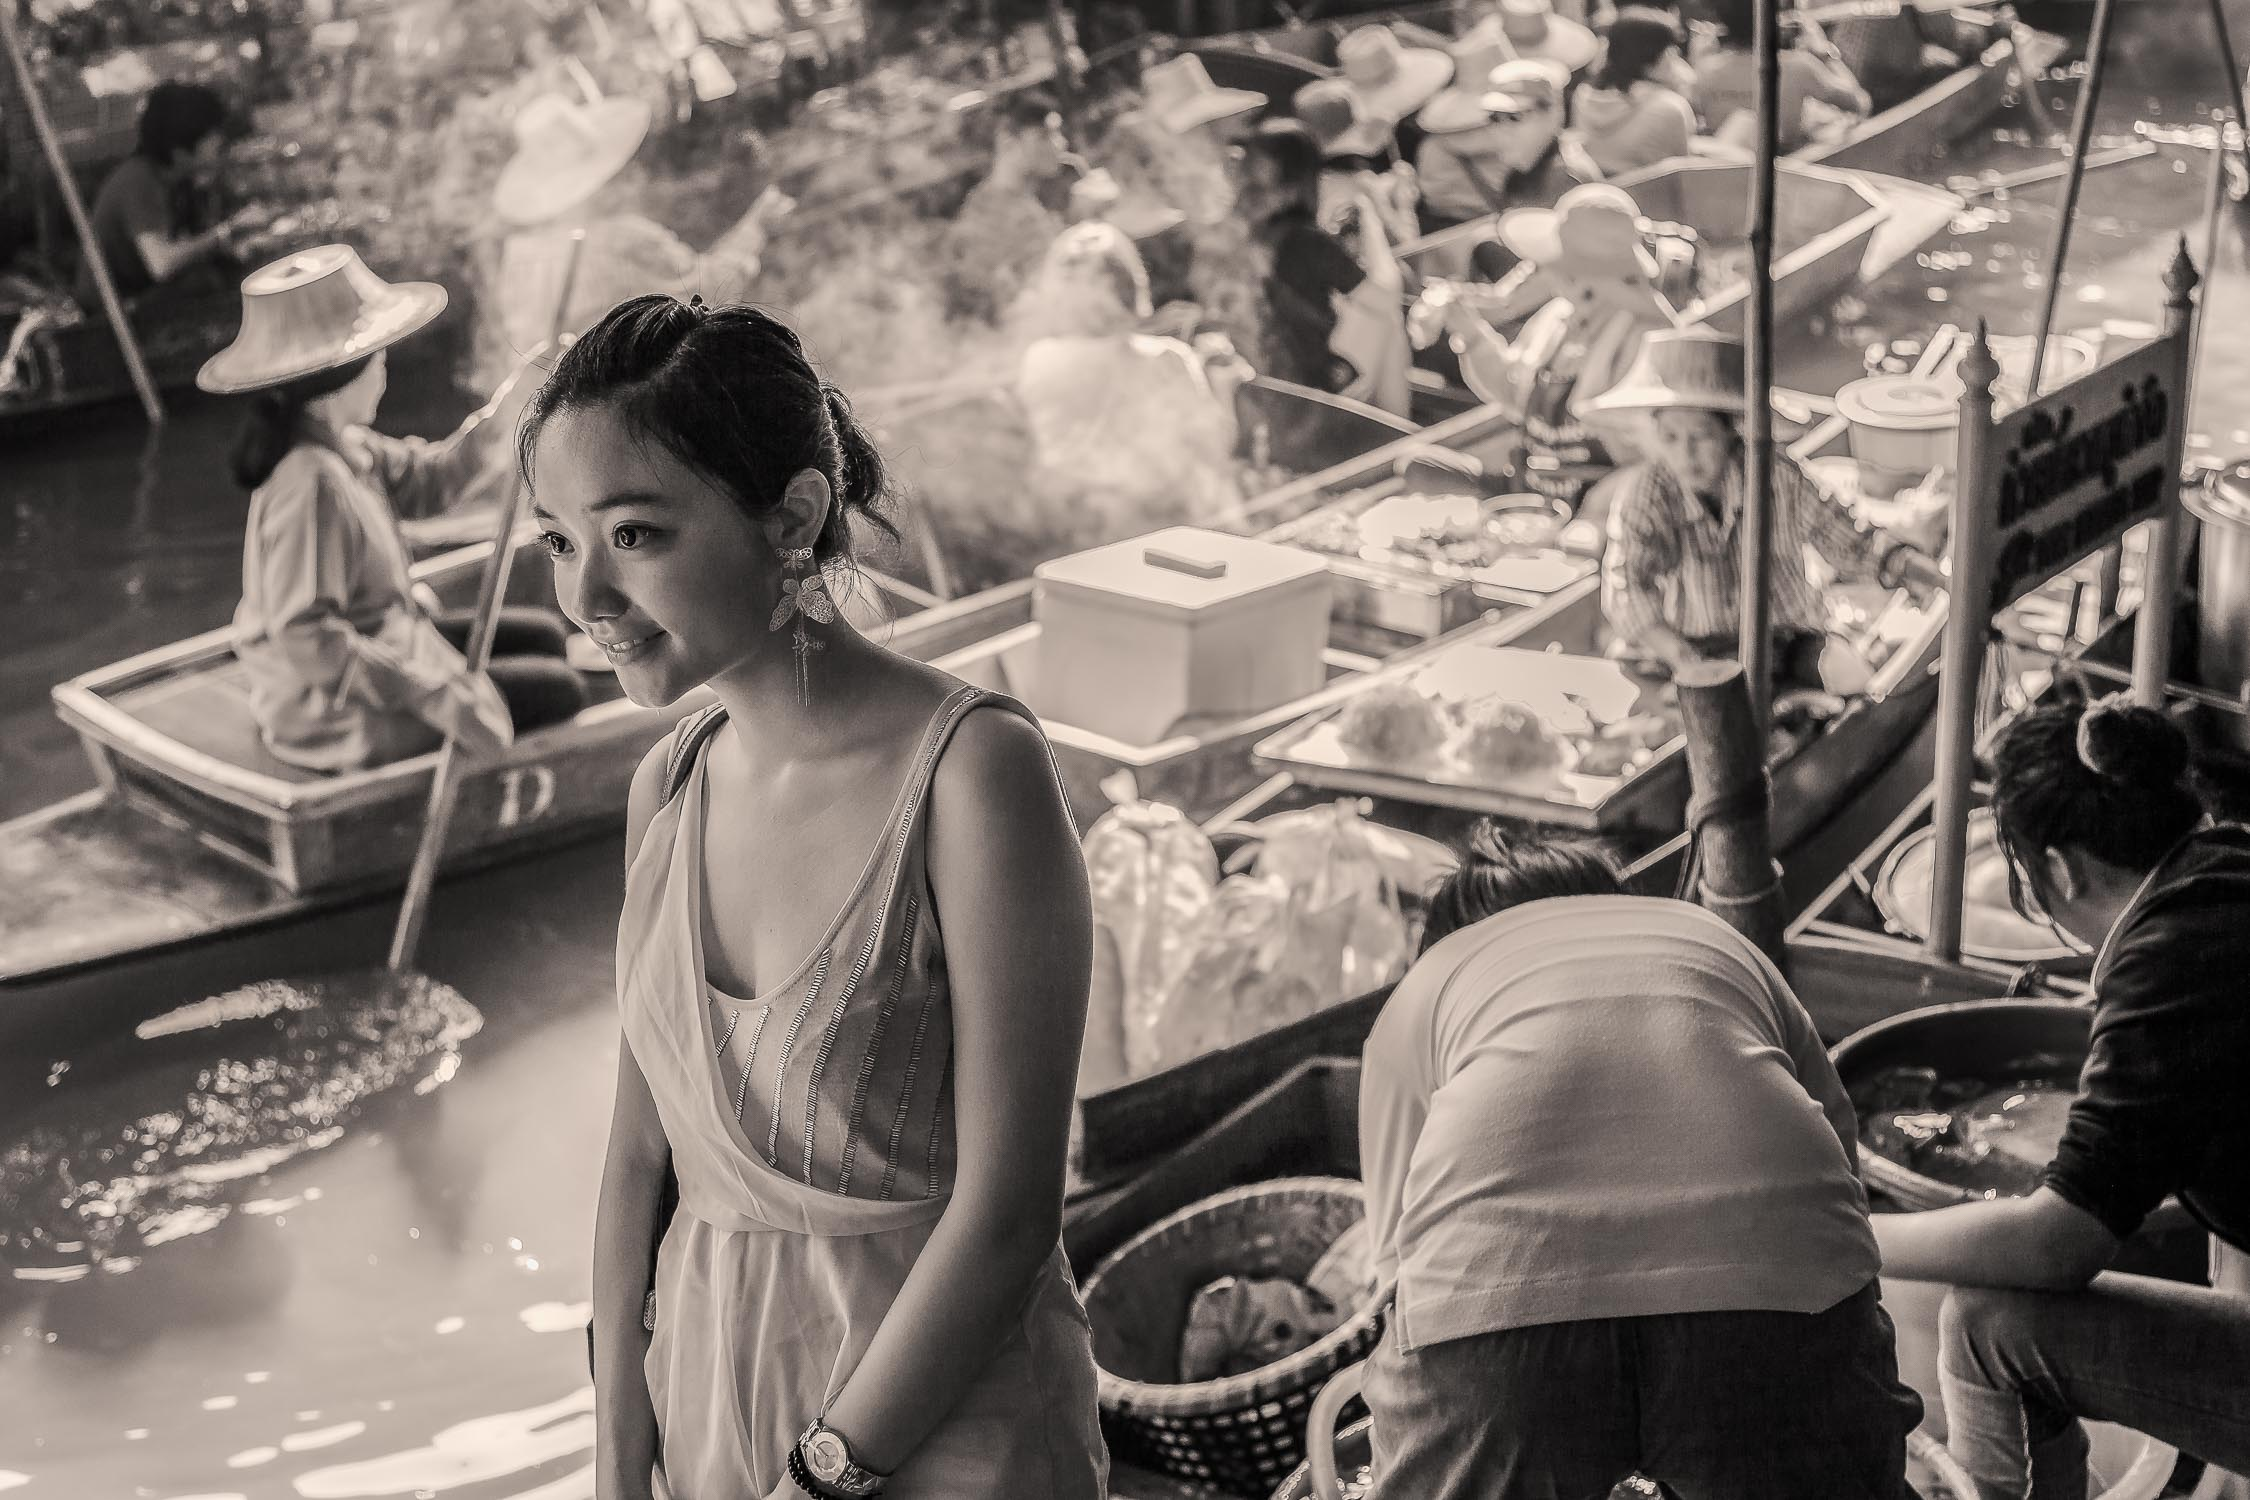 A young woman amidst the hustle and bustle of the  floating market  near  Bangkok  in  Thailand  .